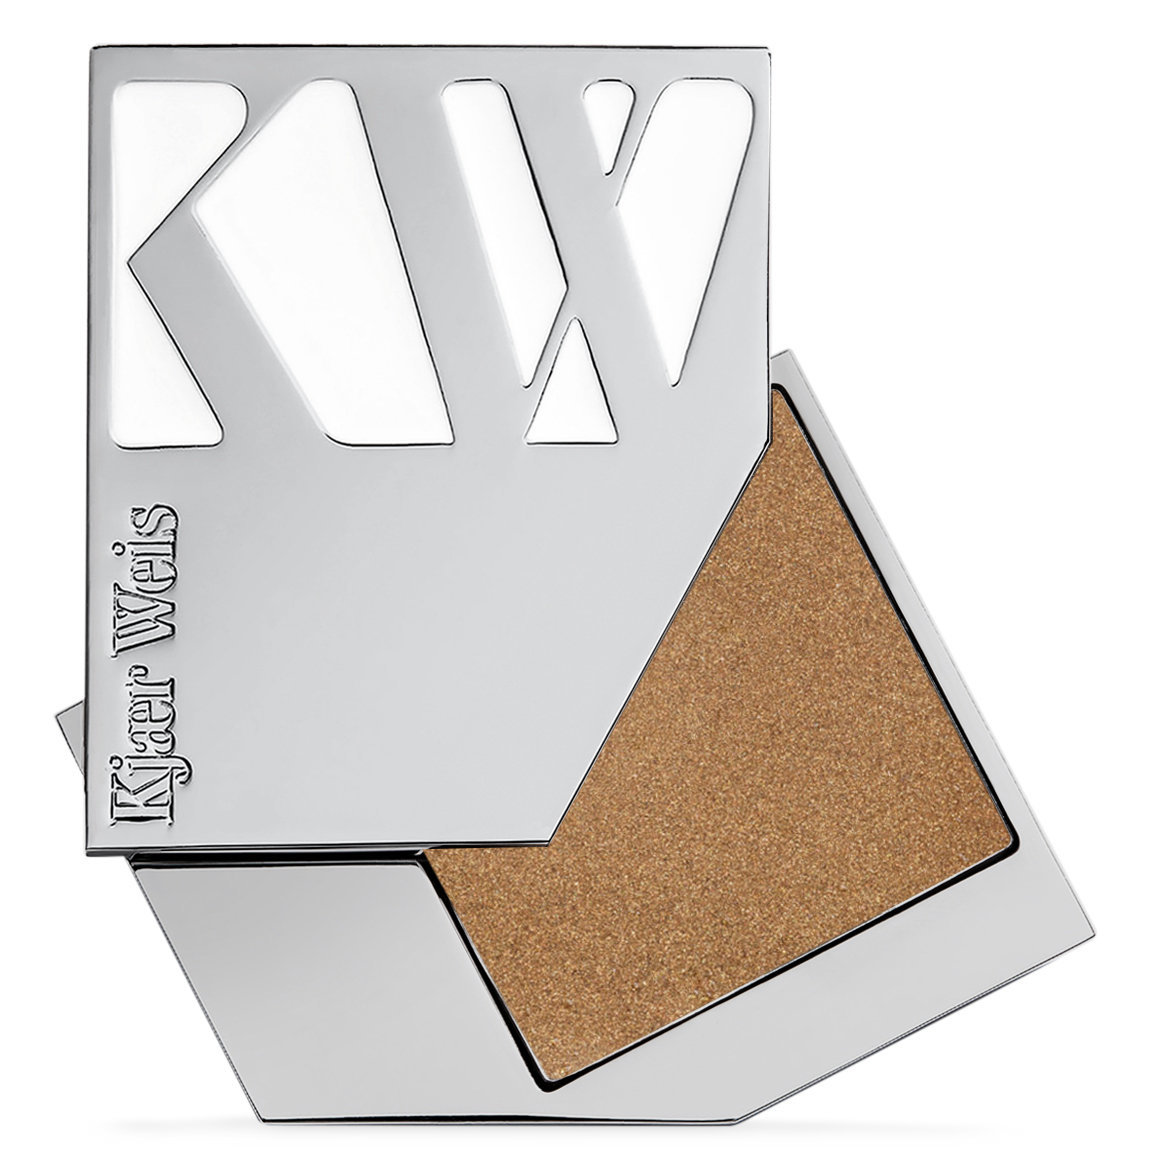 Kjaer Weis Cream Glow Dazzling alternative view 1.